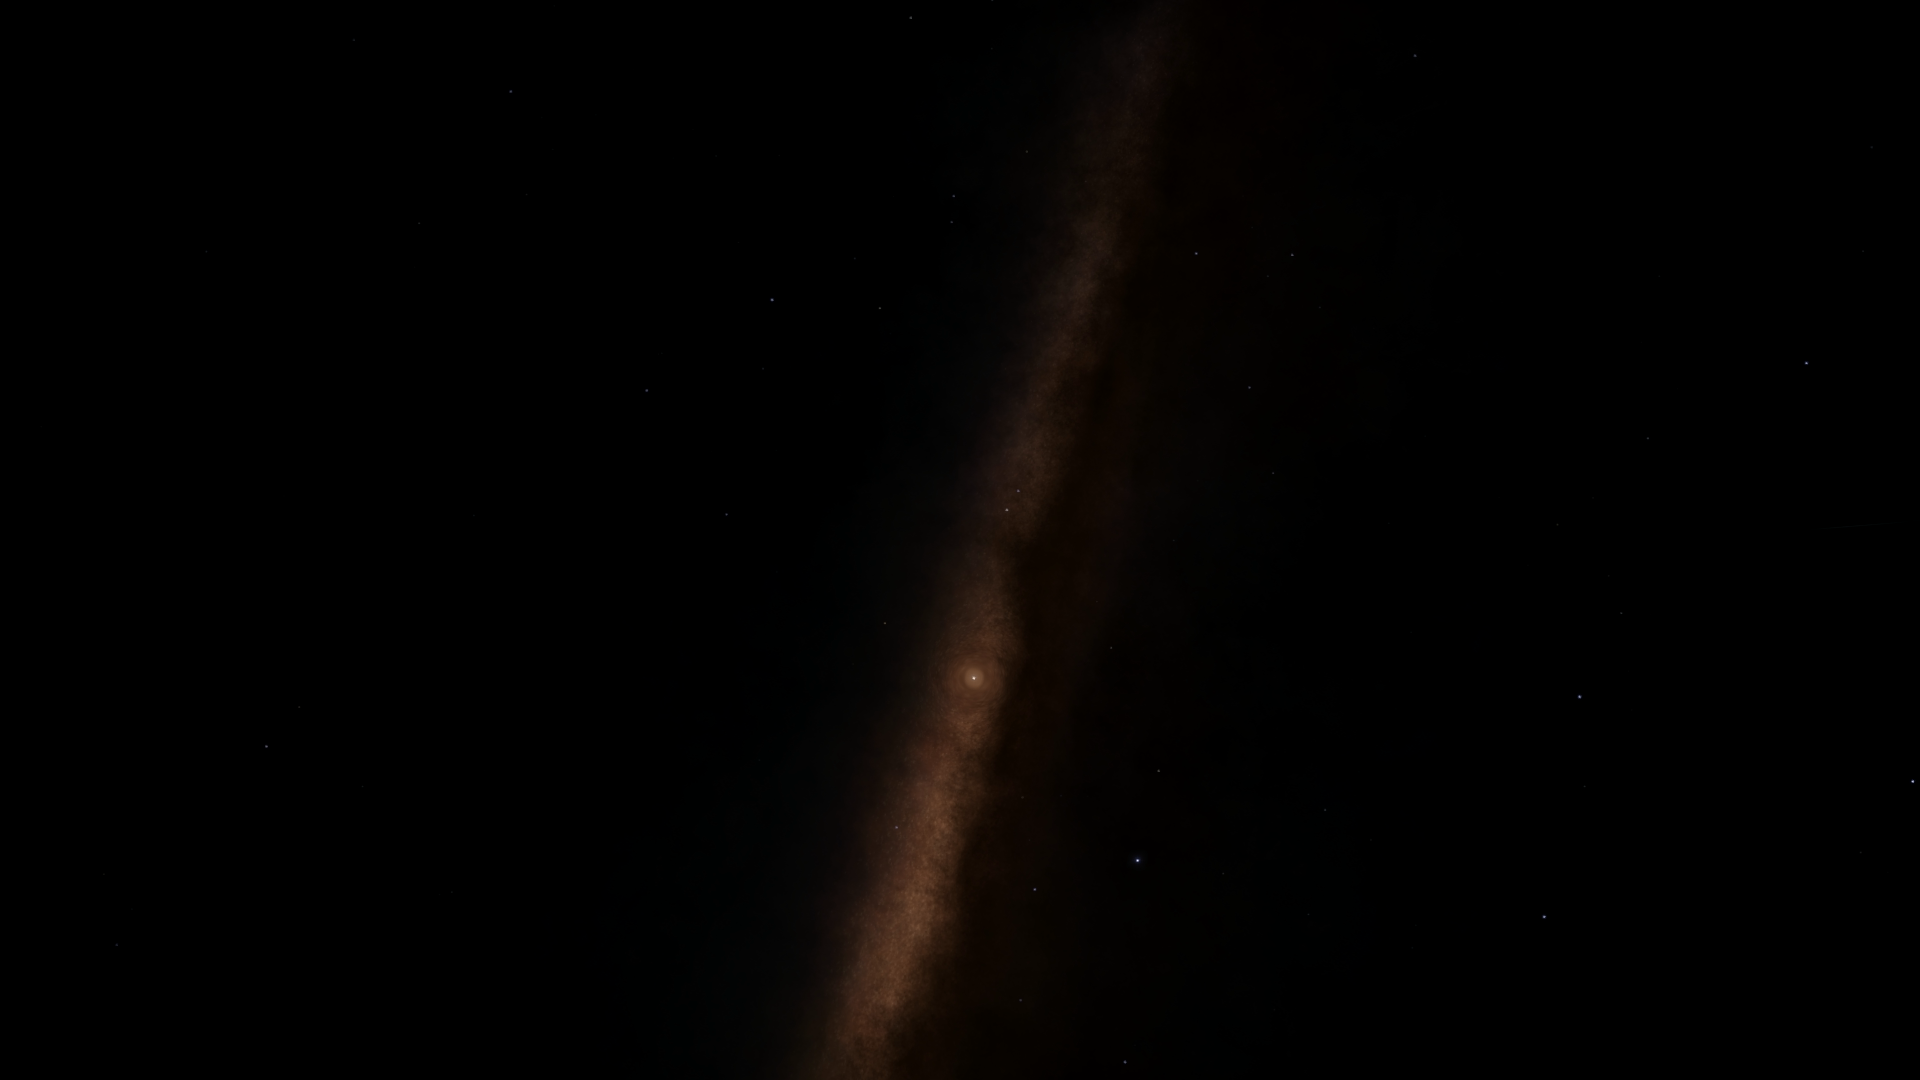 HD 167971 D - Neutron Star